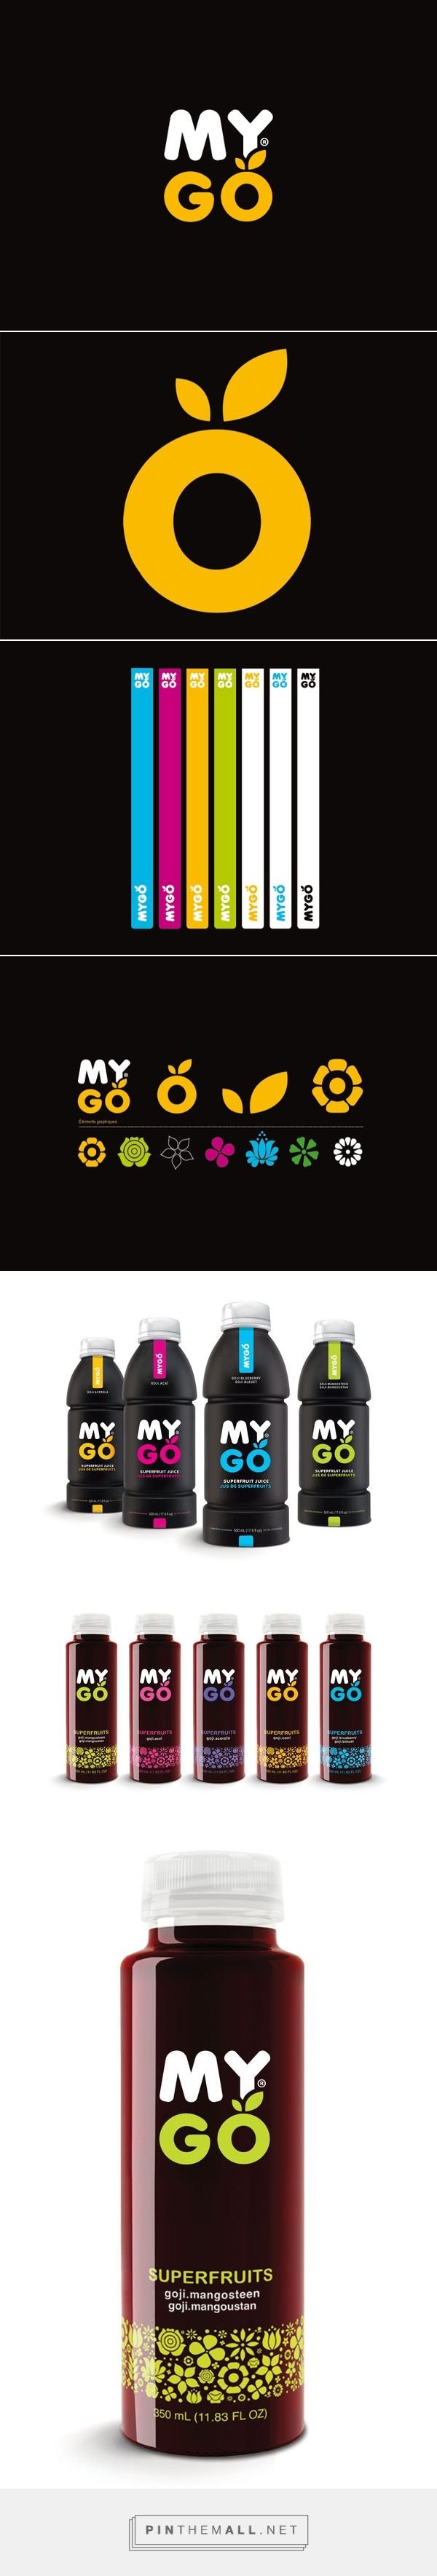 "MYGO SUPERFRUITS packaging on Behance by Thebault Julien curated by Packaging Diva PD. ""MYGO is a superfruit juice, rich in antioxidants with goji berry, an ancient Chinese medicinal fruit, often called "" the fruit of happiness""."